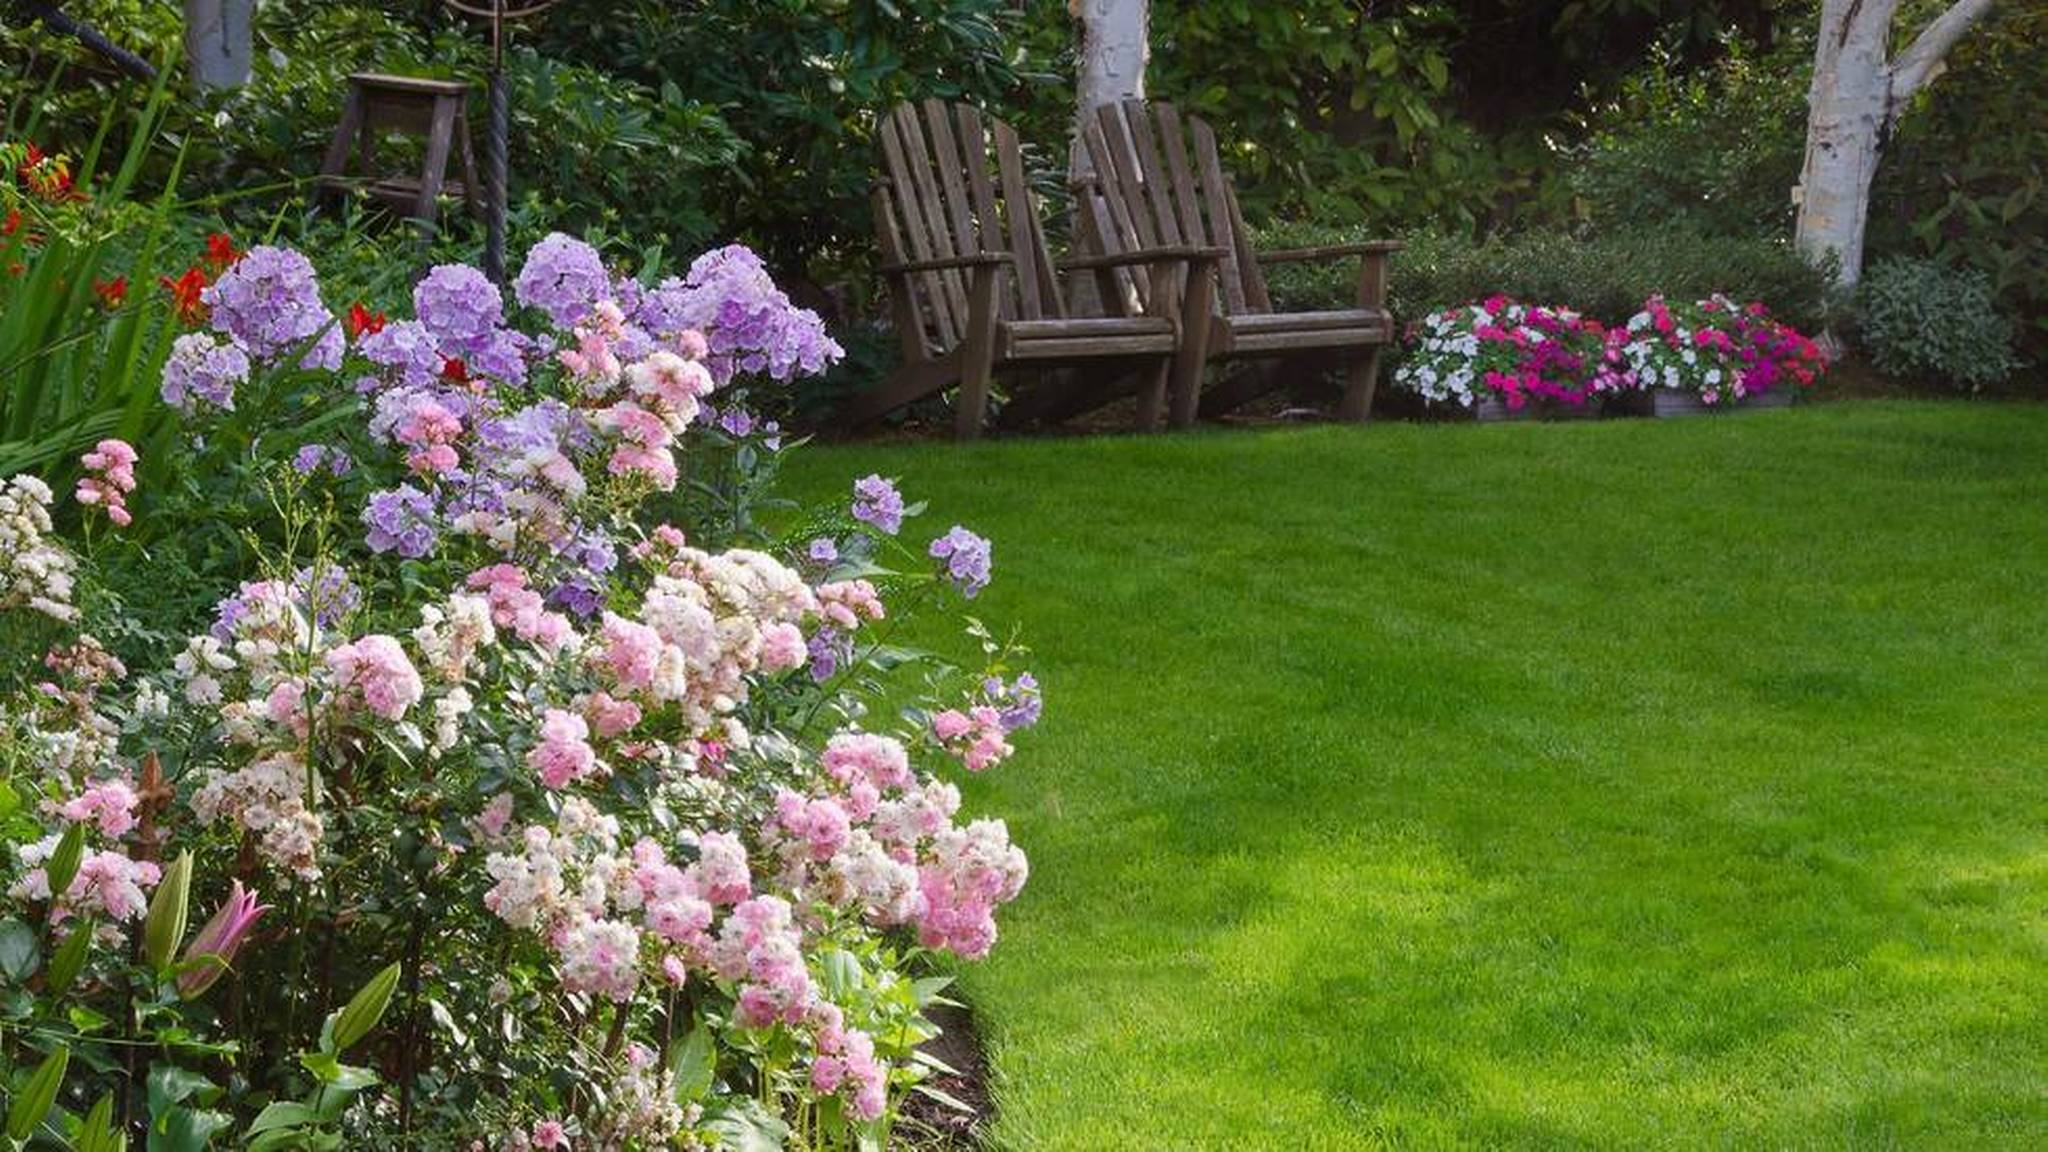 Wondrous Bacyard With Curb Appeal Landacaping Using Flowers and Garden Chair